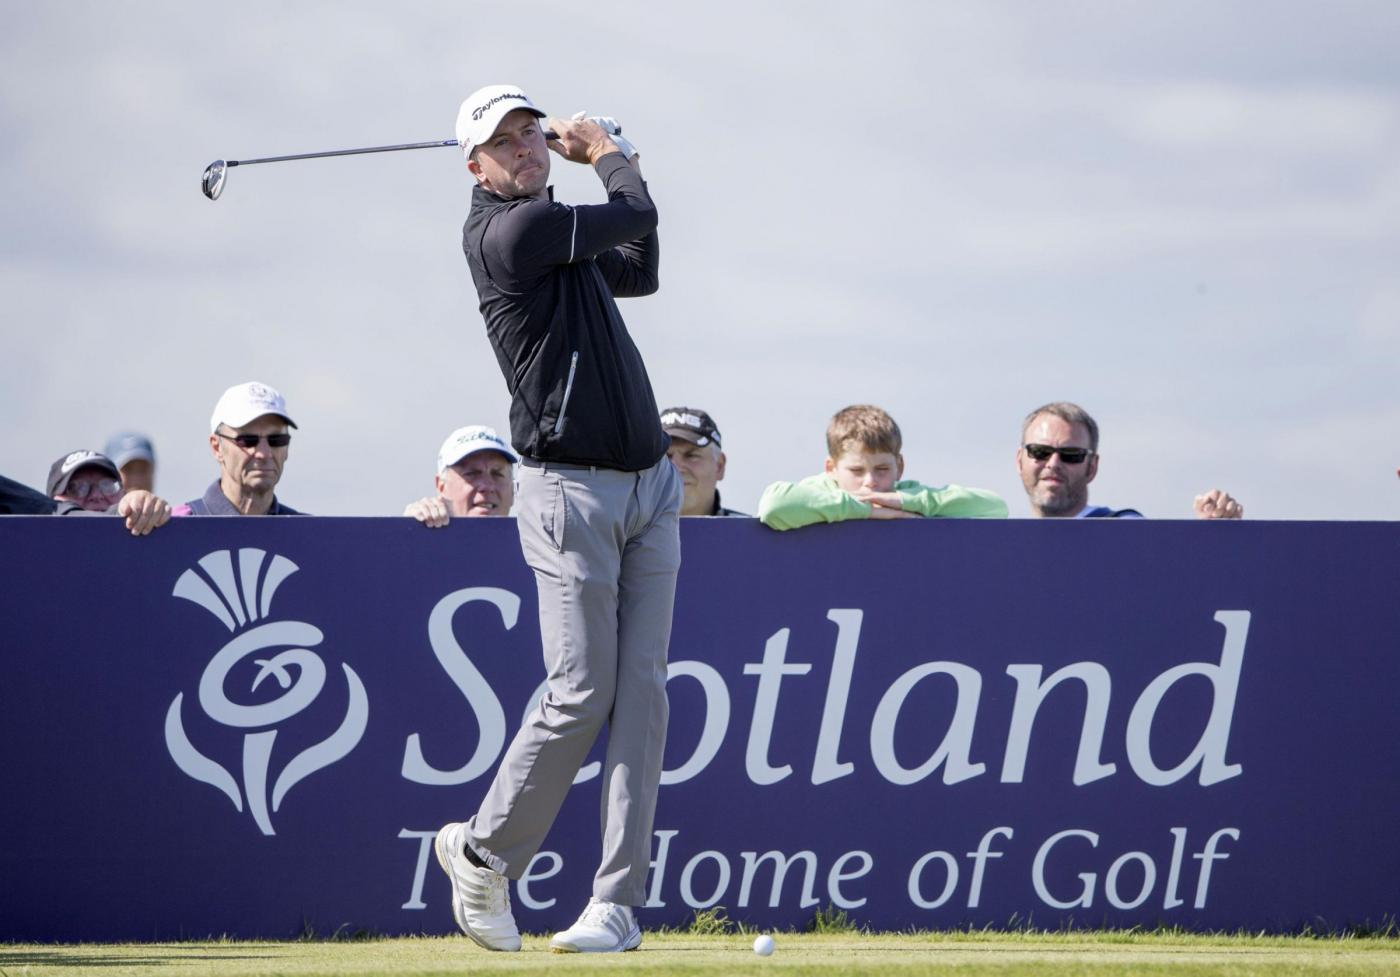 Scotland's Martin Laird tees off at the 7th hole during day one of the Scottish Open at Gullane Golf Club, East Lothian. PRESS ASSOCIATION Photo. Picture date: Thursday July 9, 2015. See PA story GOLF Gullane. Photo credit should read: Kenny Smith/PA Wire. RESTRICTIONS: Editorial use only. No commercial use. No false commercial association. No video emulation. No manipulation of images.